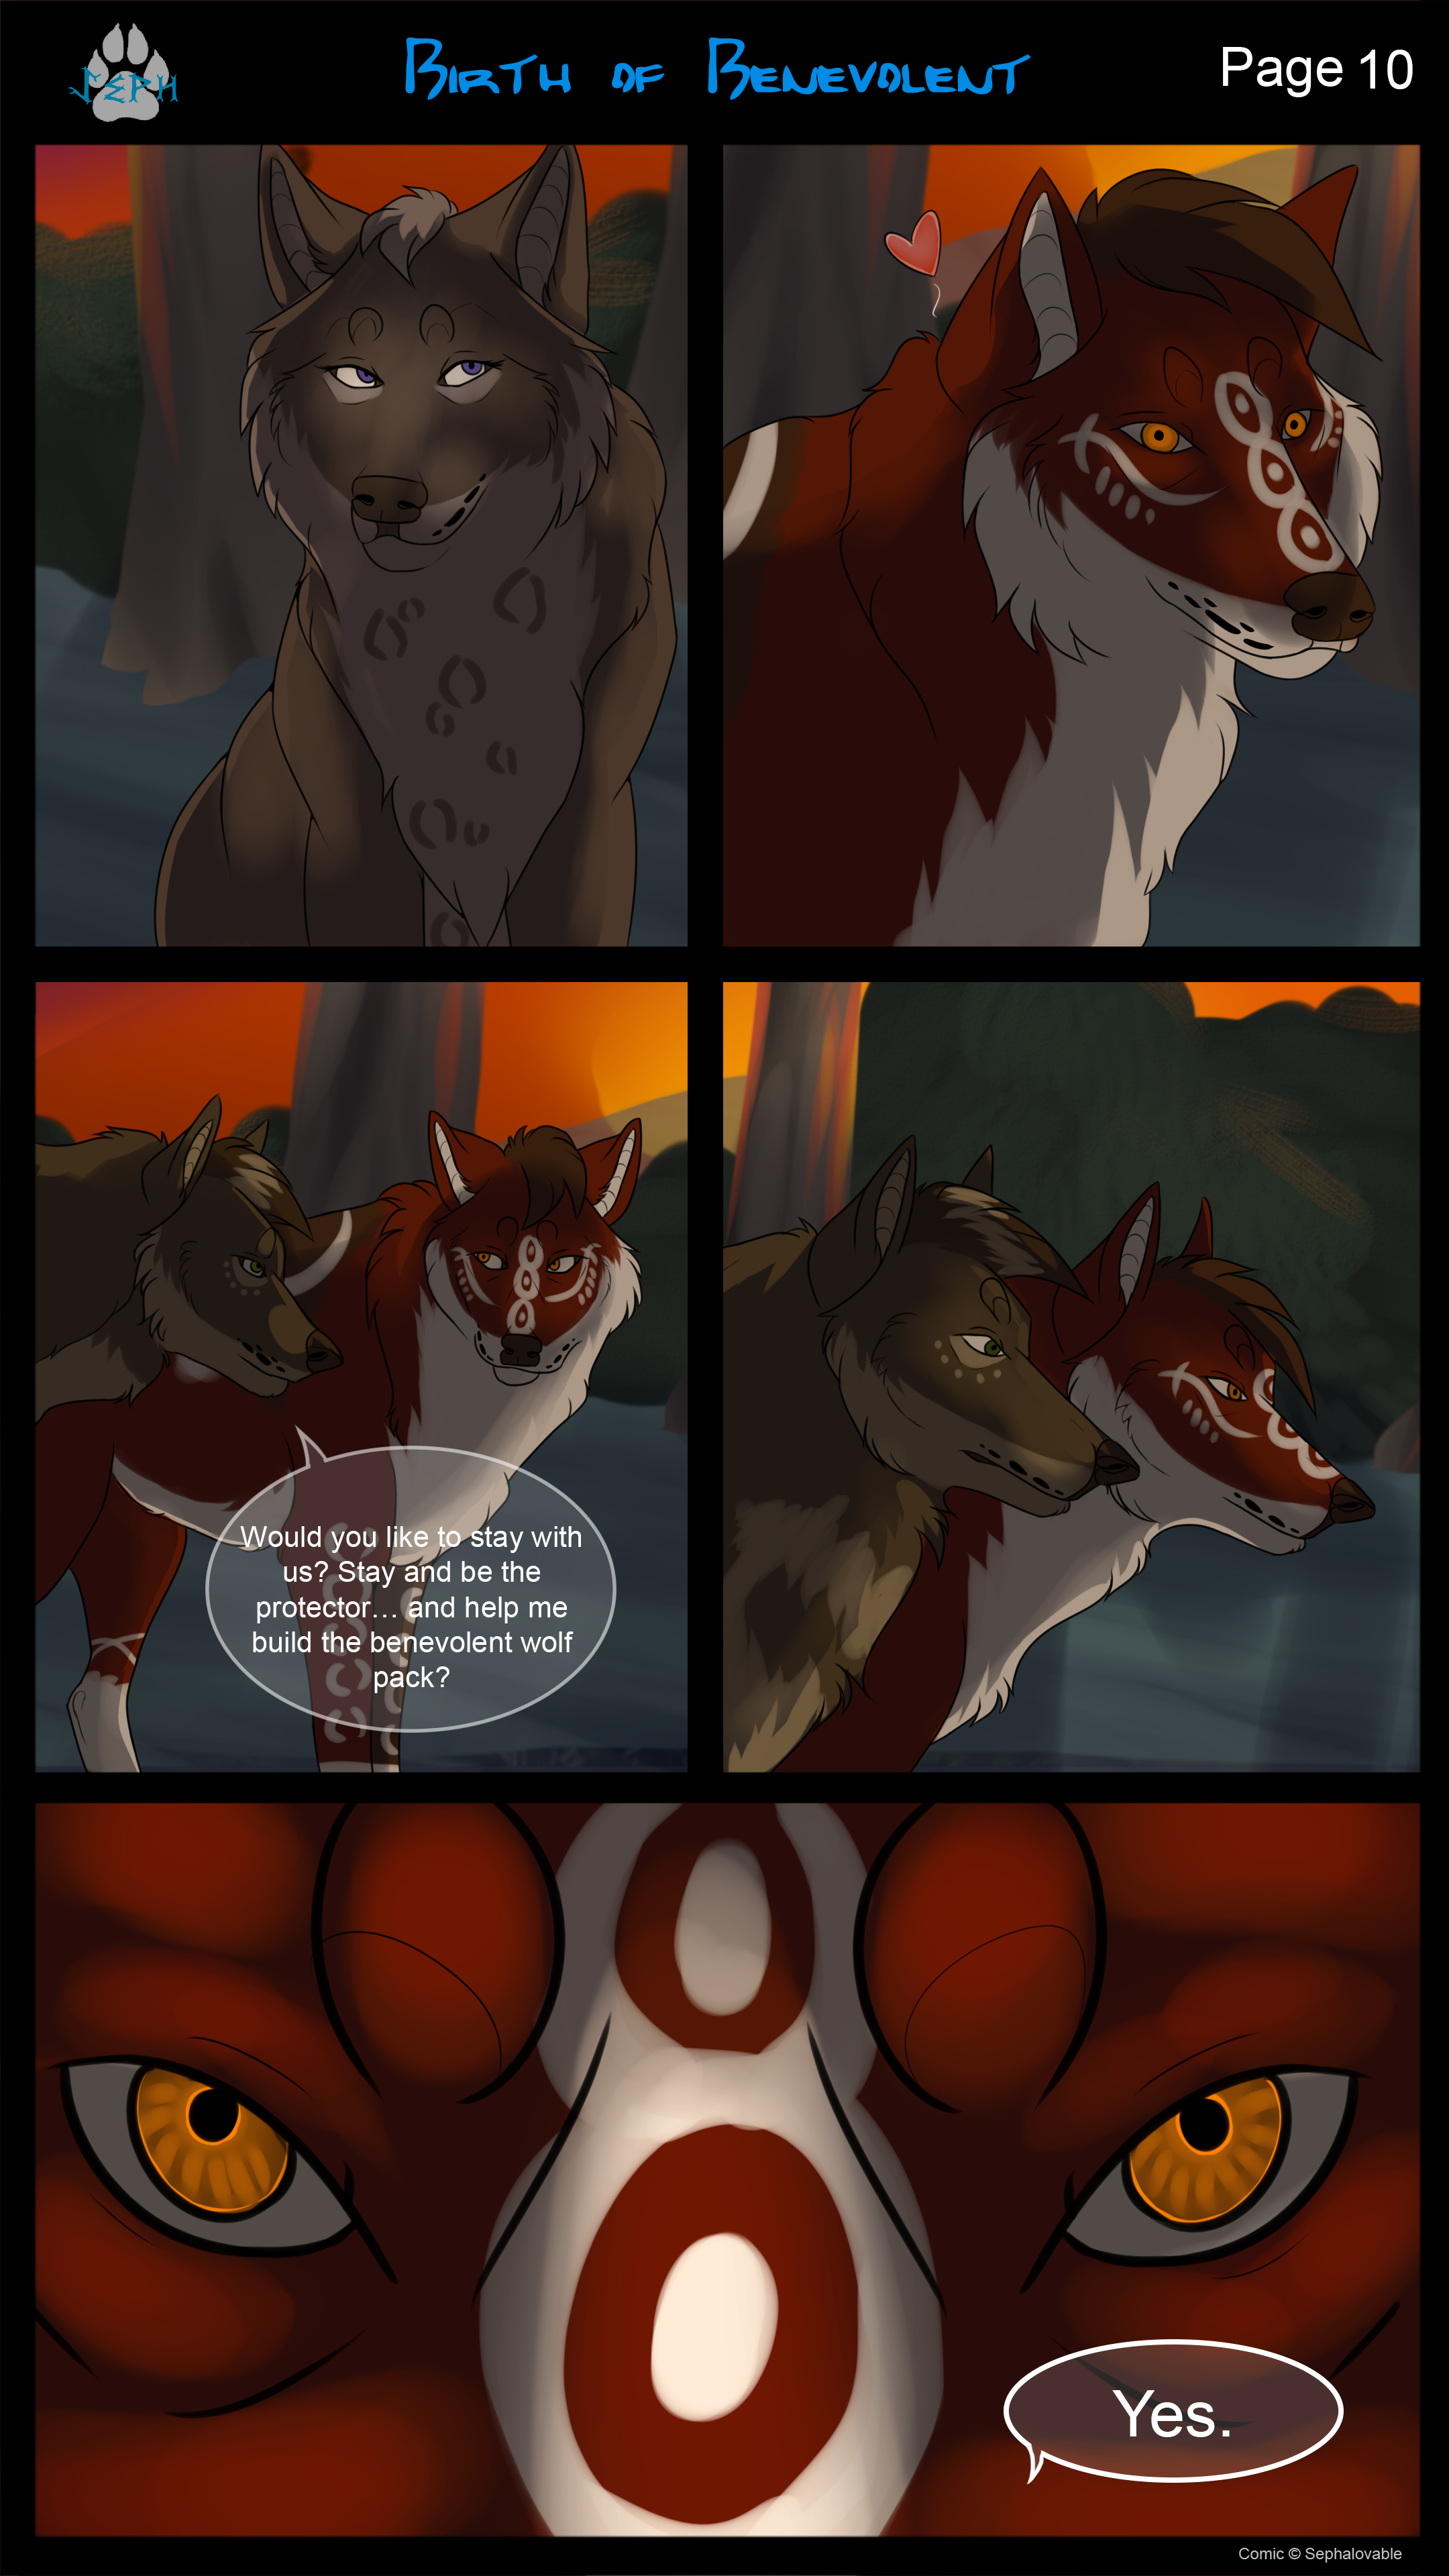 Birth of Benevolent Page 10 by MoscoMoon